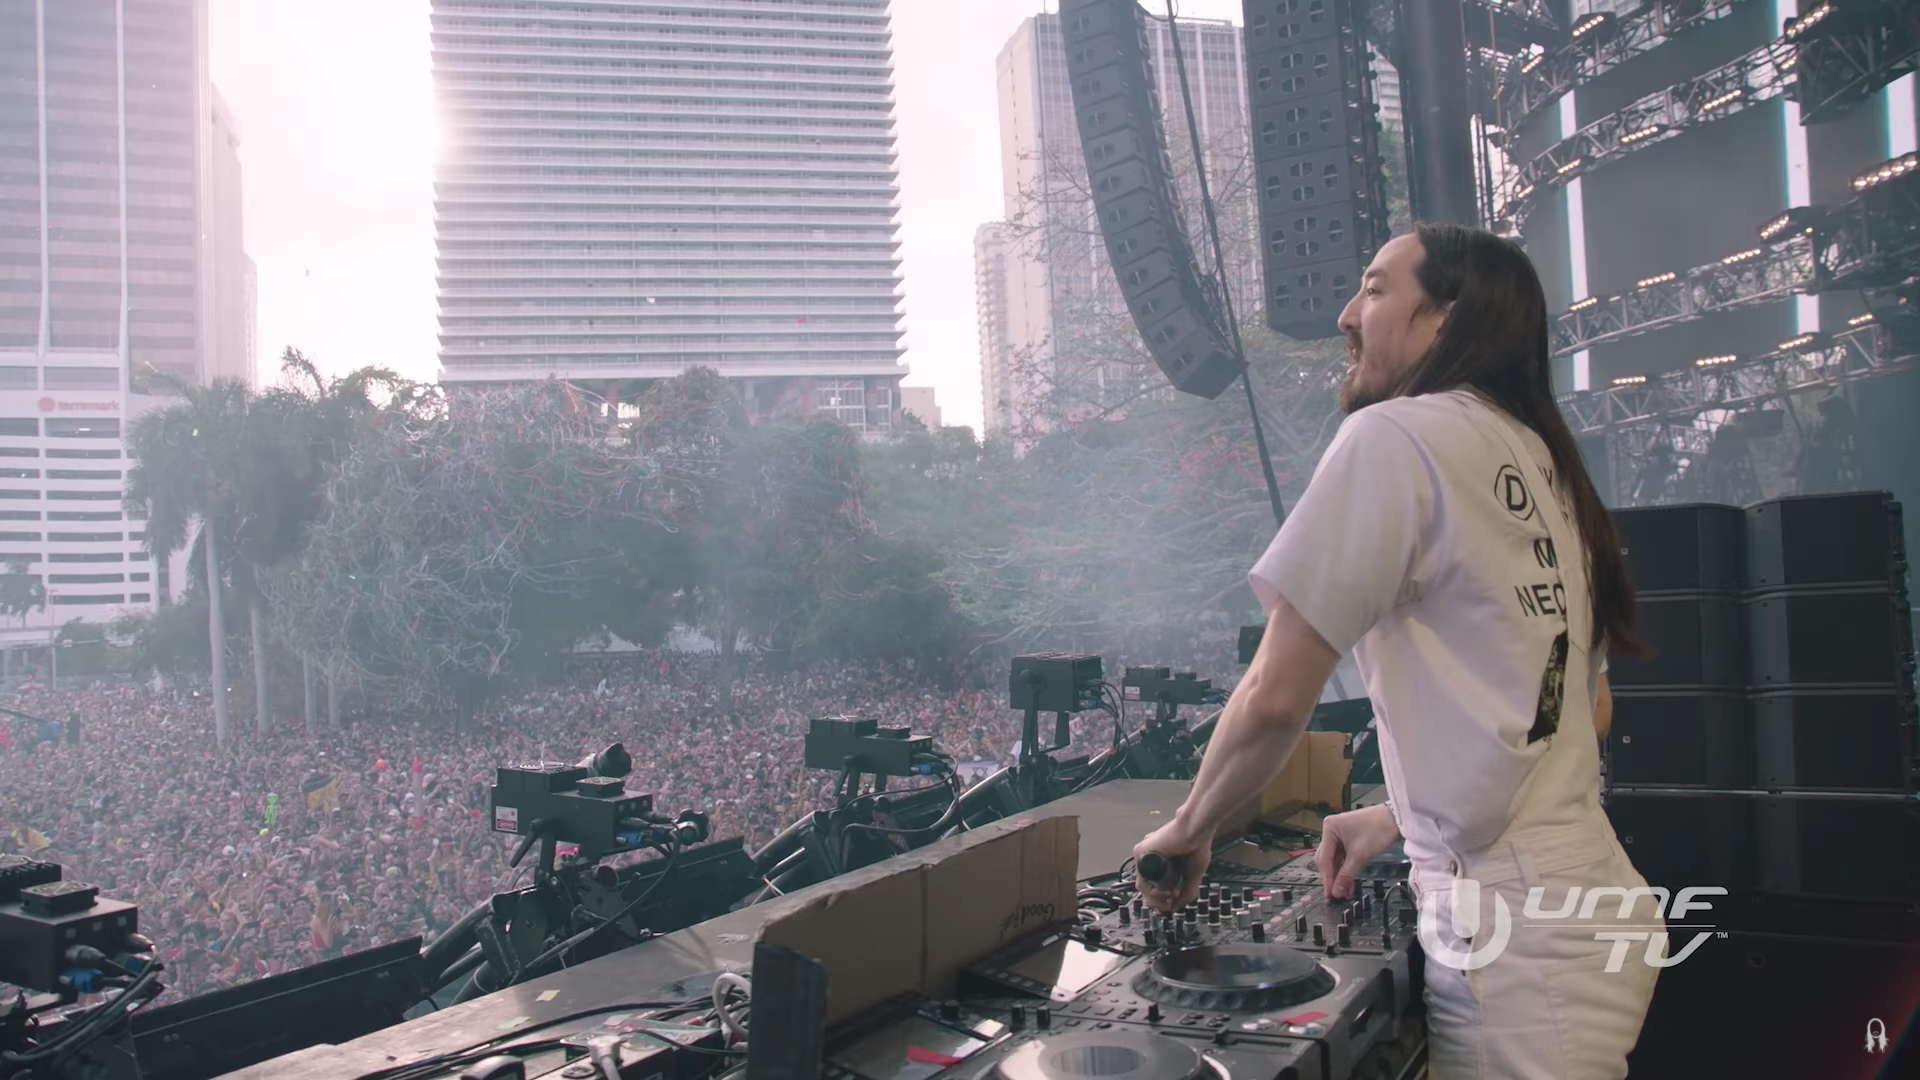 Watch Live Sets from Ultra Music Festival featuring ZEDD